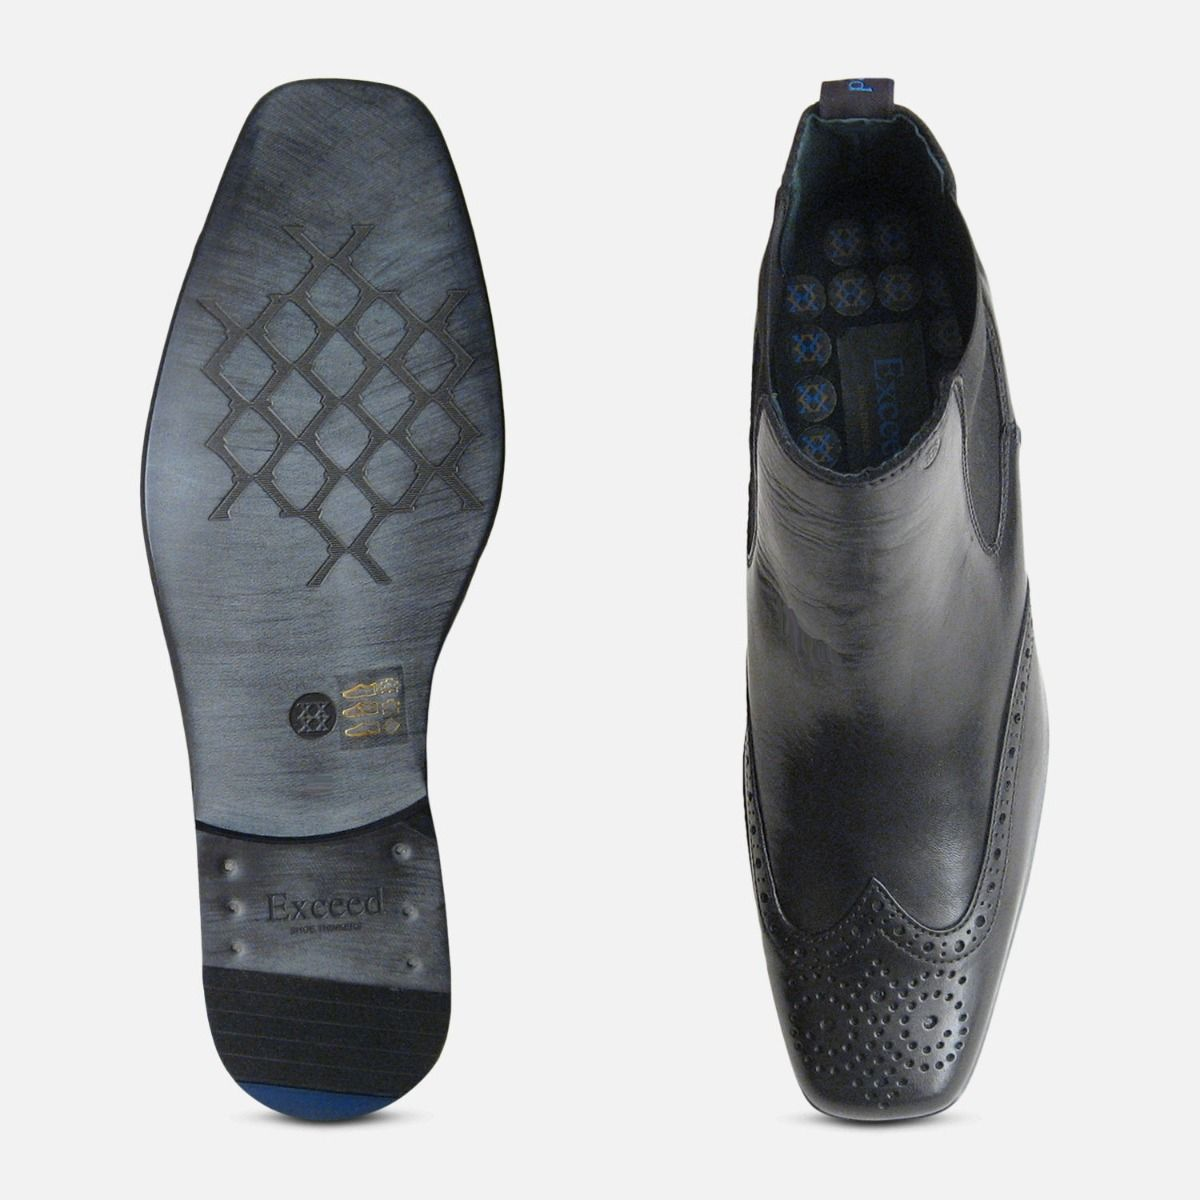 Exceed Black Brogue Mens Chelsea Boots